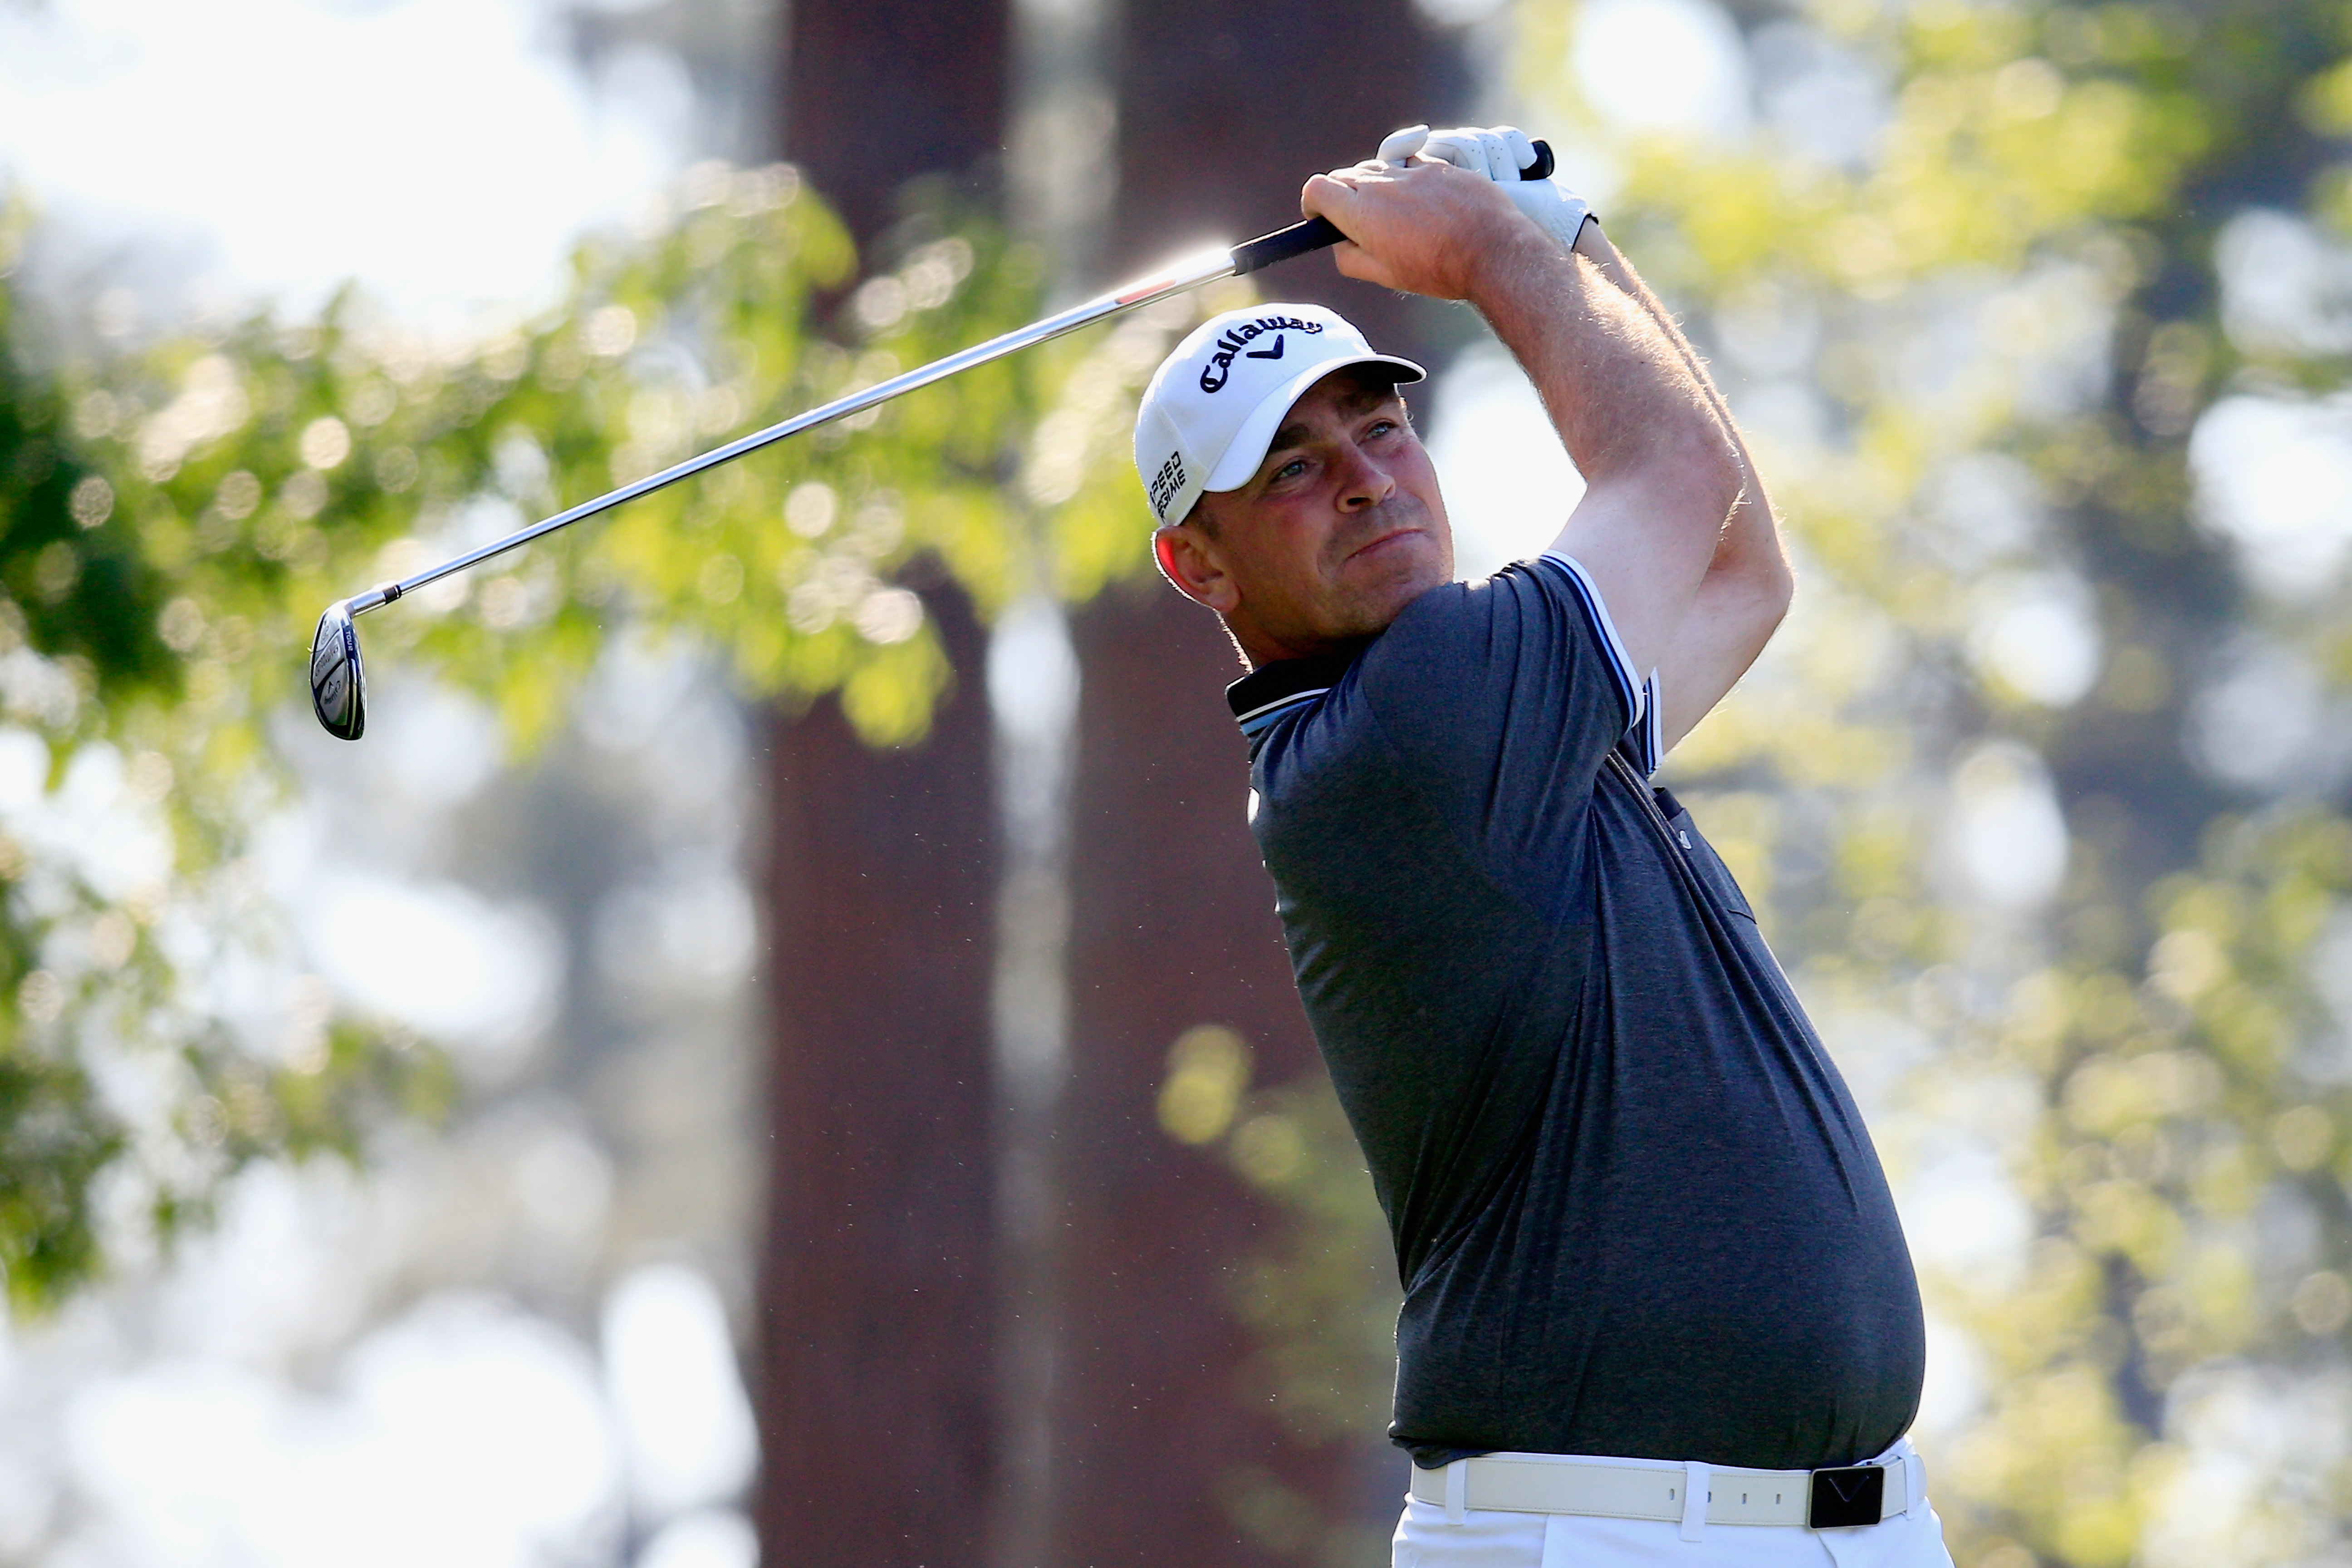 Bjorn has been struggling with back injuries (Photo: Getty Images)